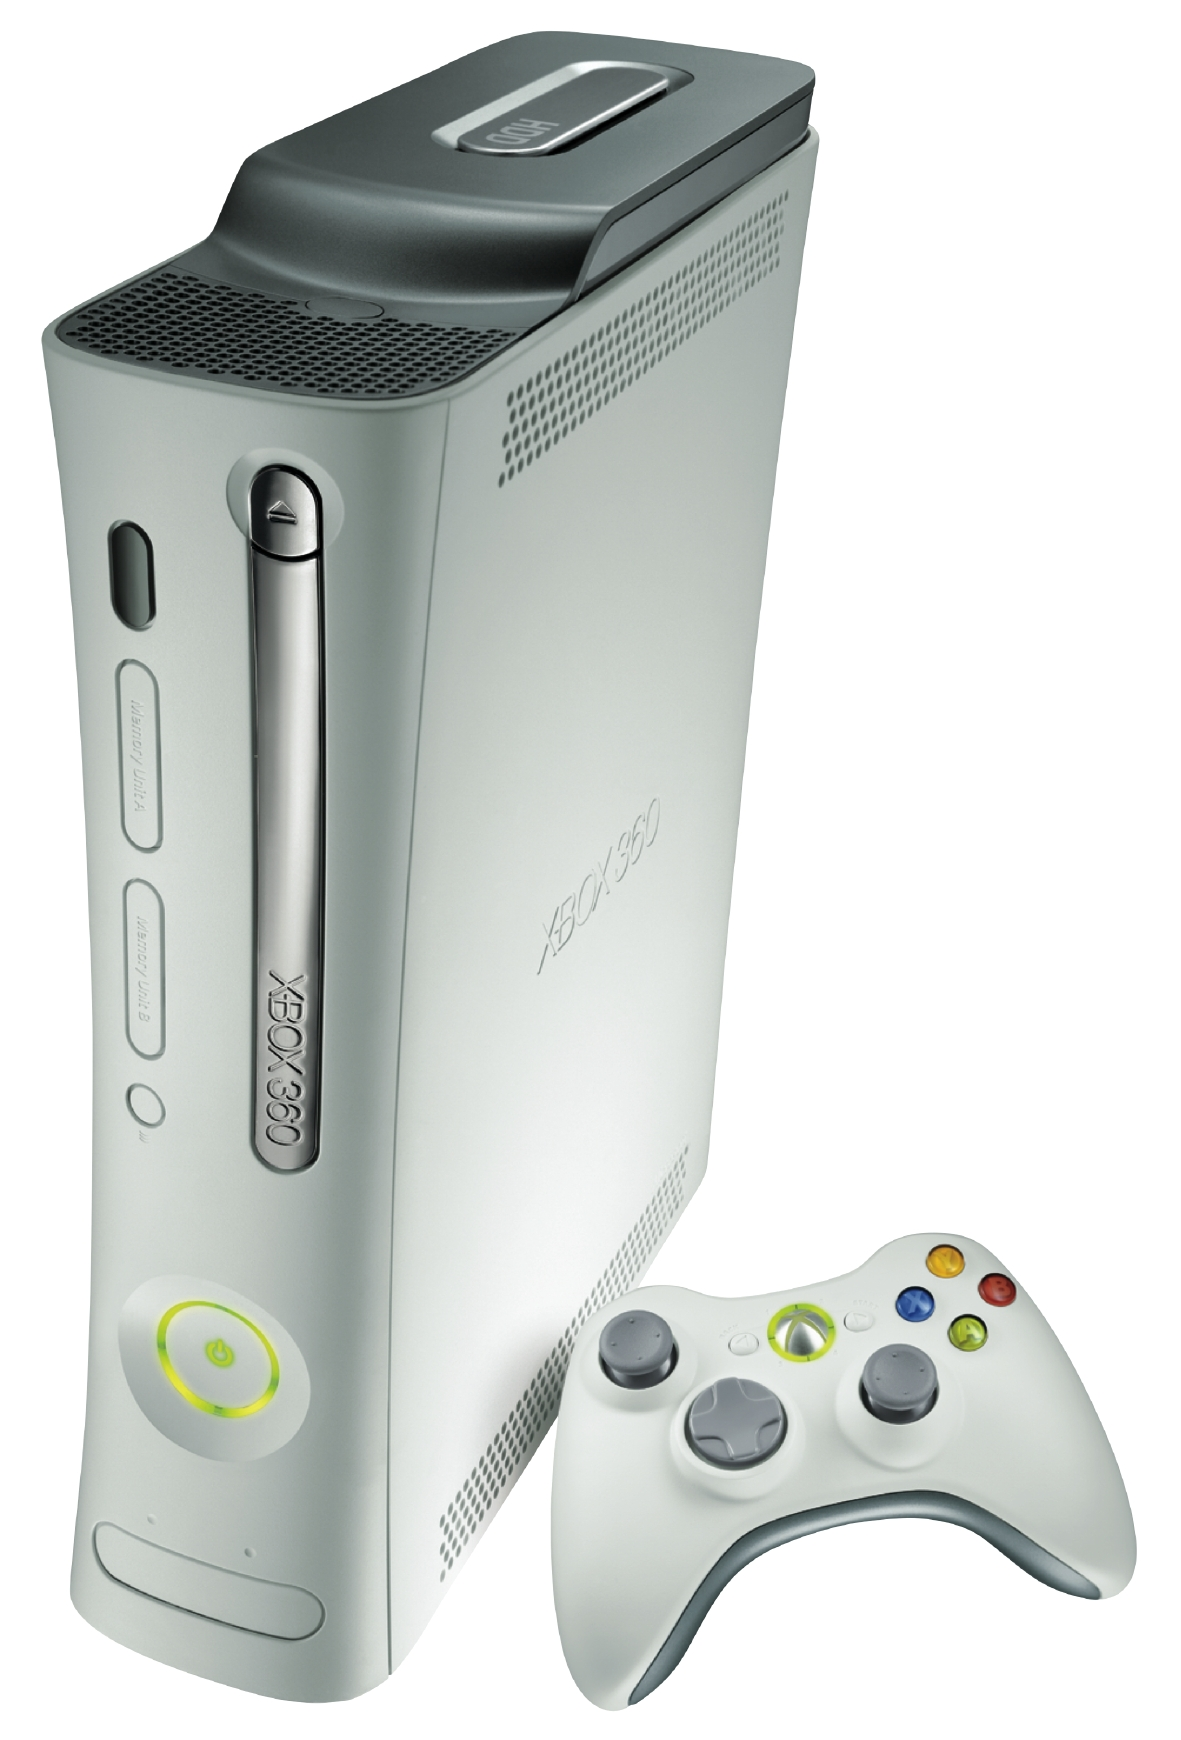 Microsoft xbox 360 accessories - 4bc